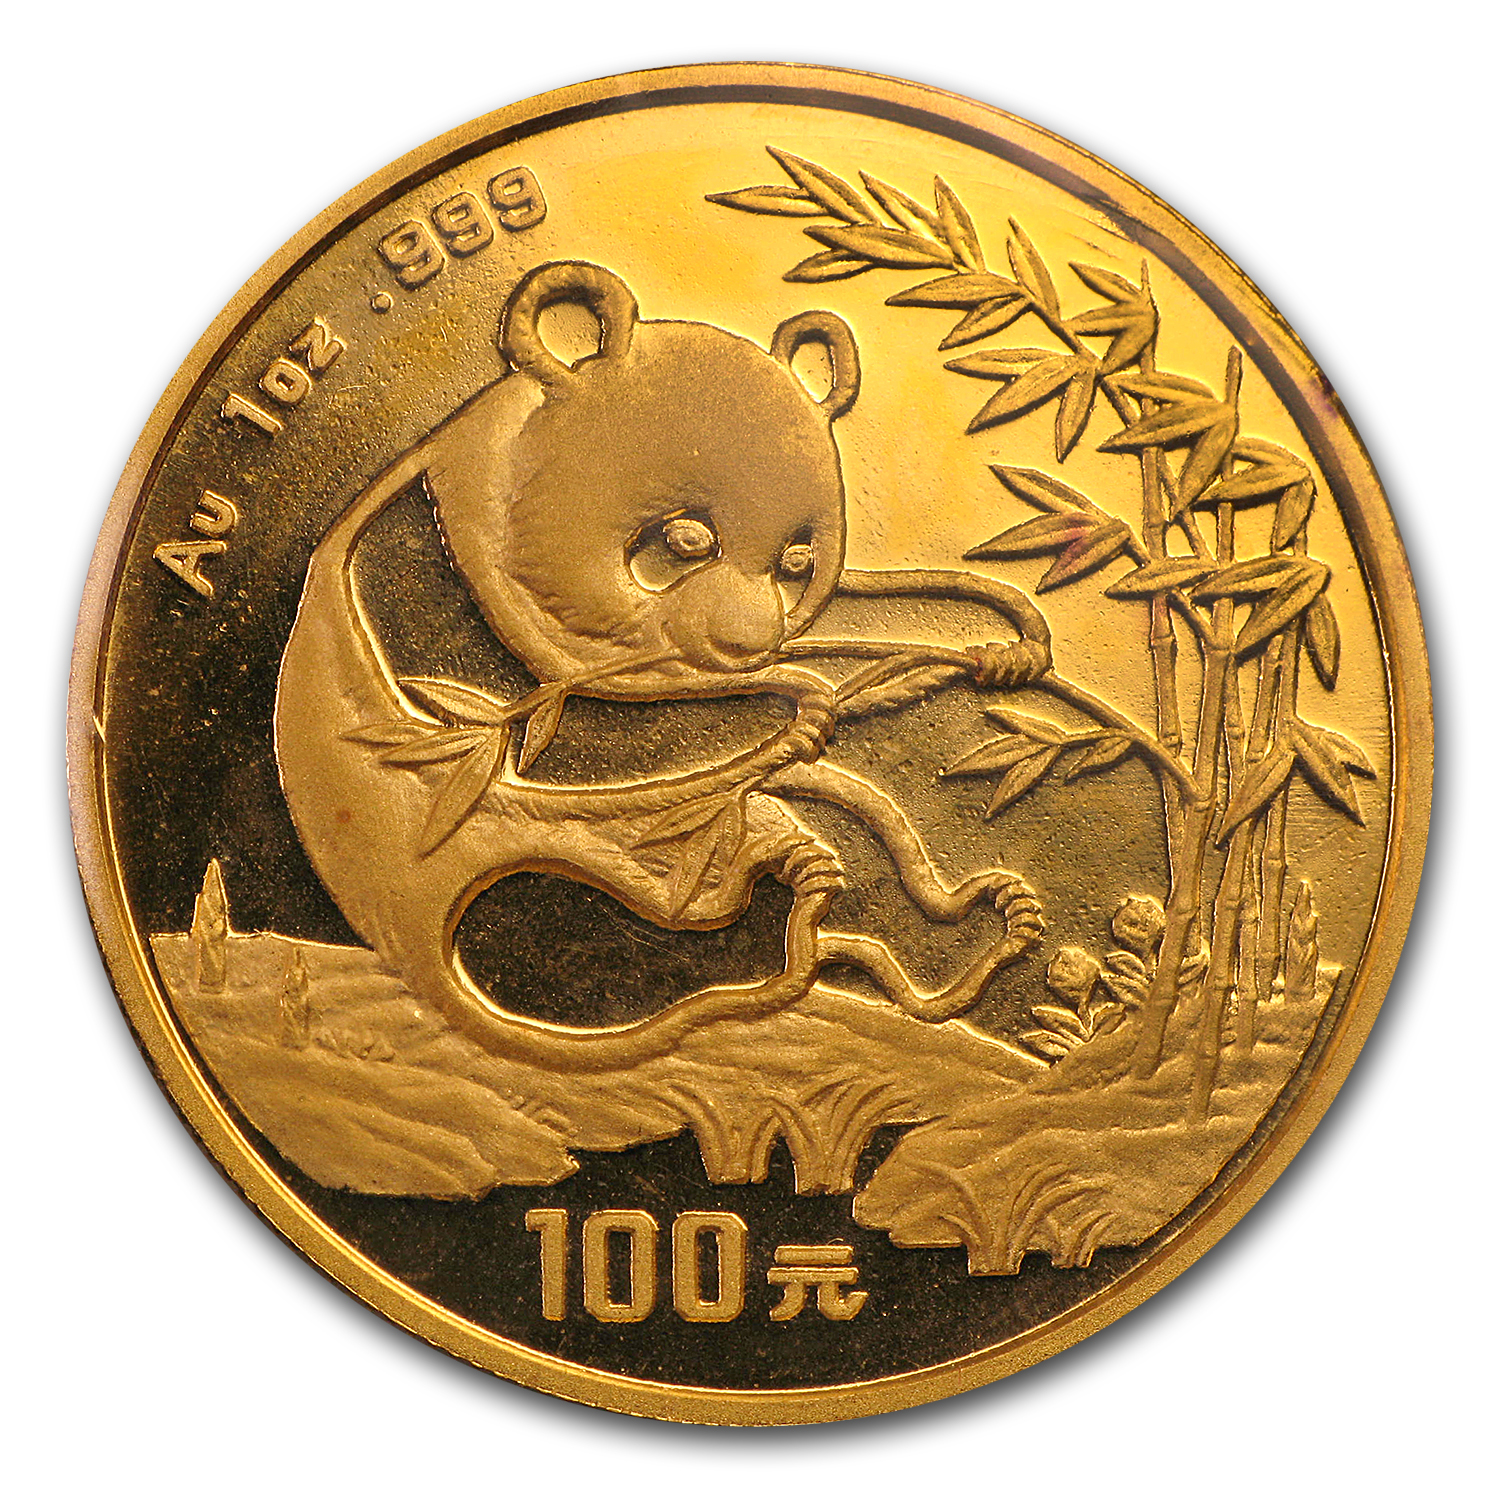 1994 1 oz Gold Chinese Panda - Large Date (Sealed)